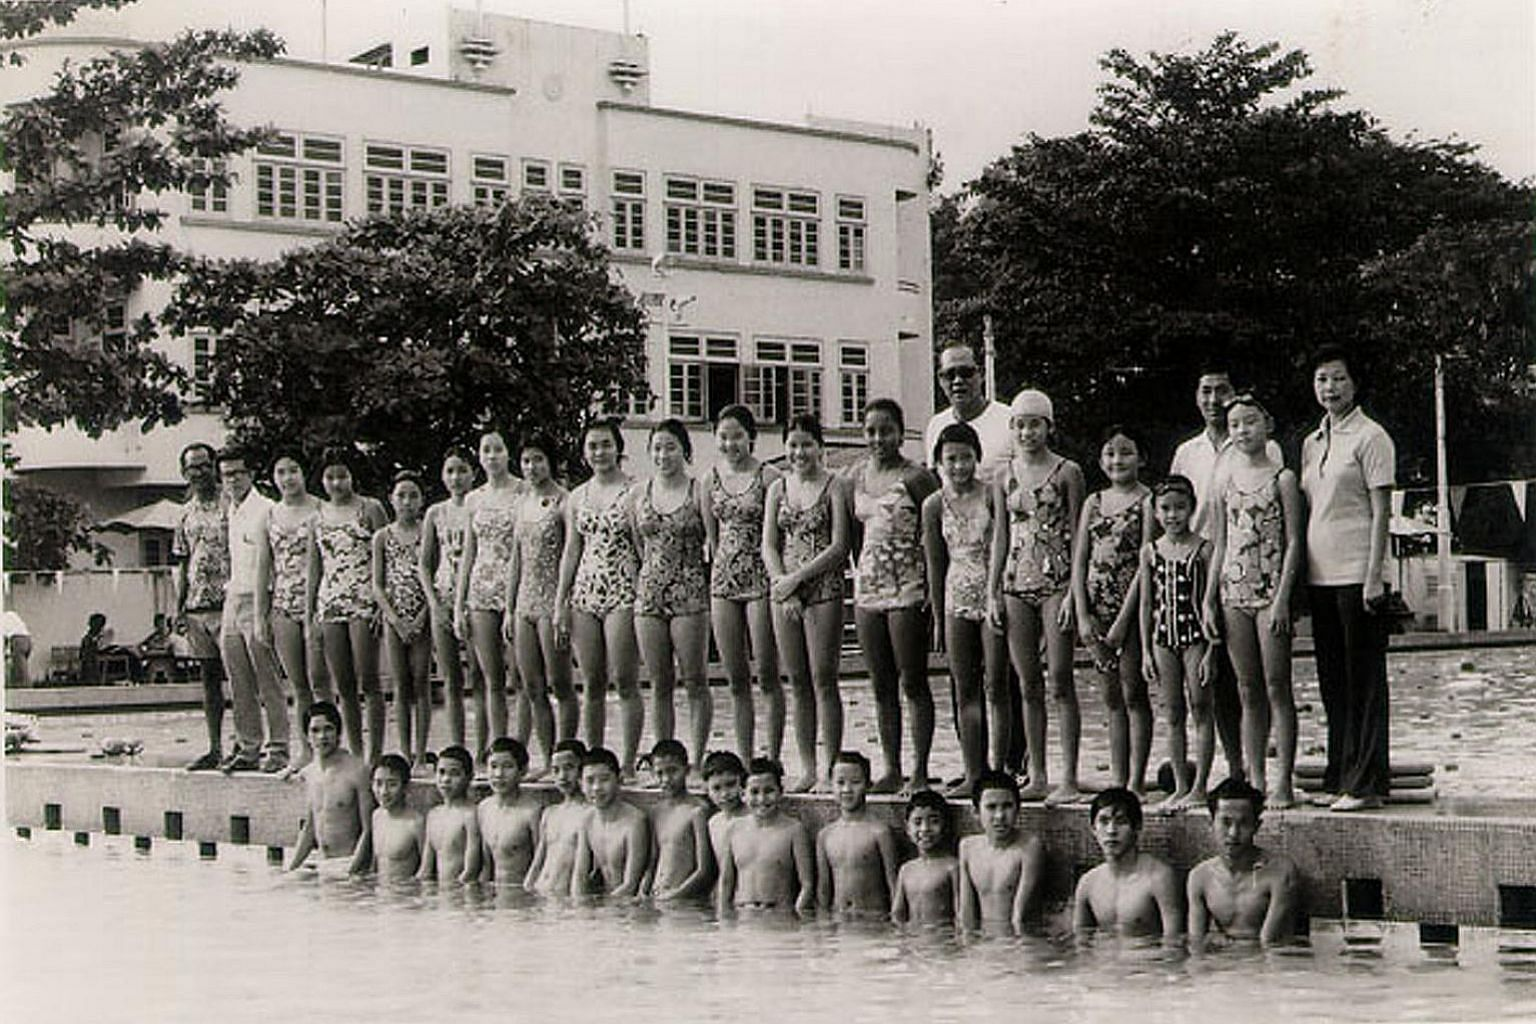 A group of young swimmers at the Chinese Swimming Club in the 1970s.